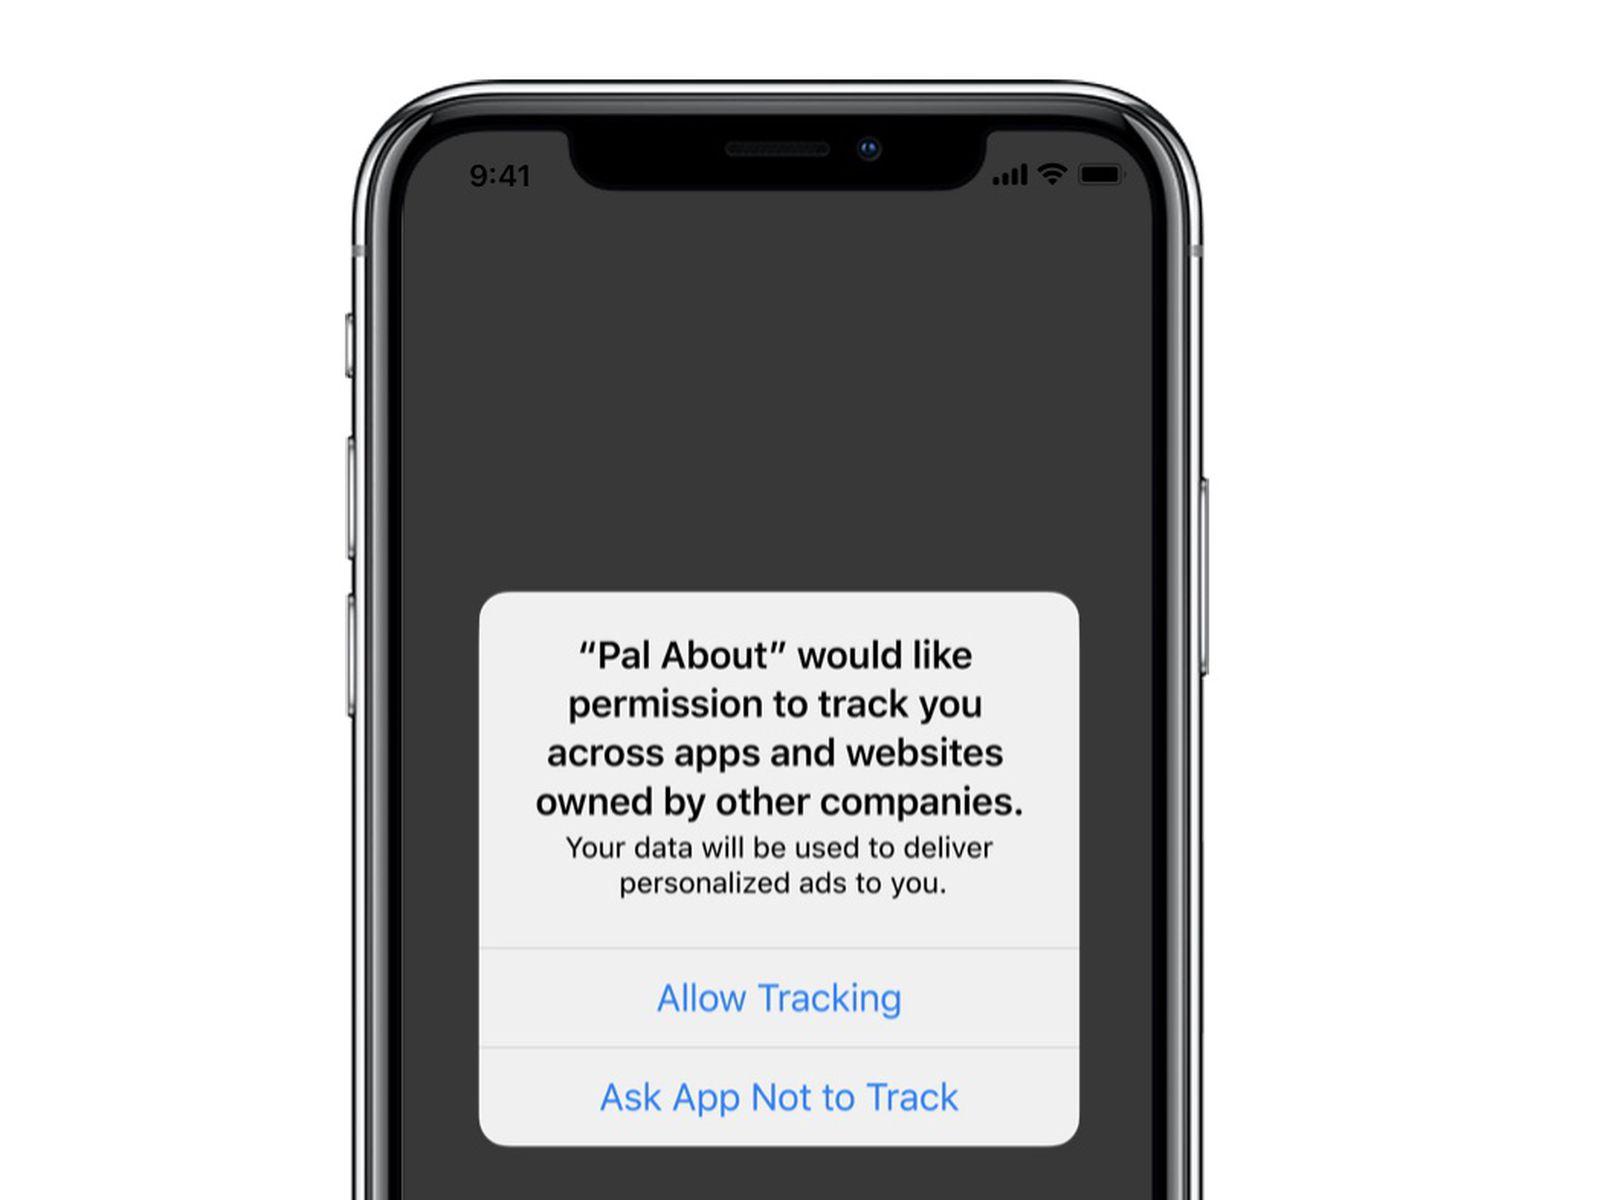 iOS 14 allow tracking